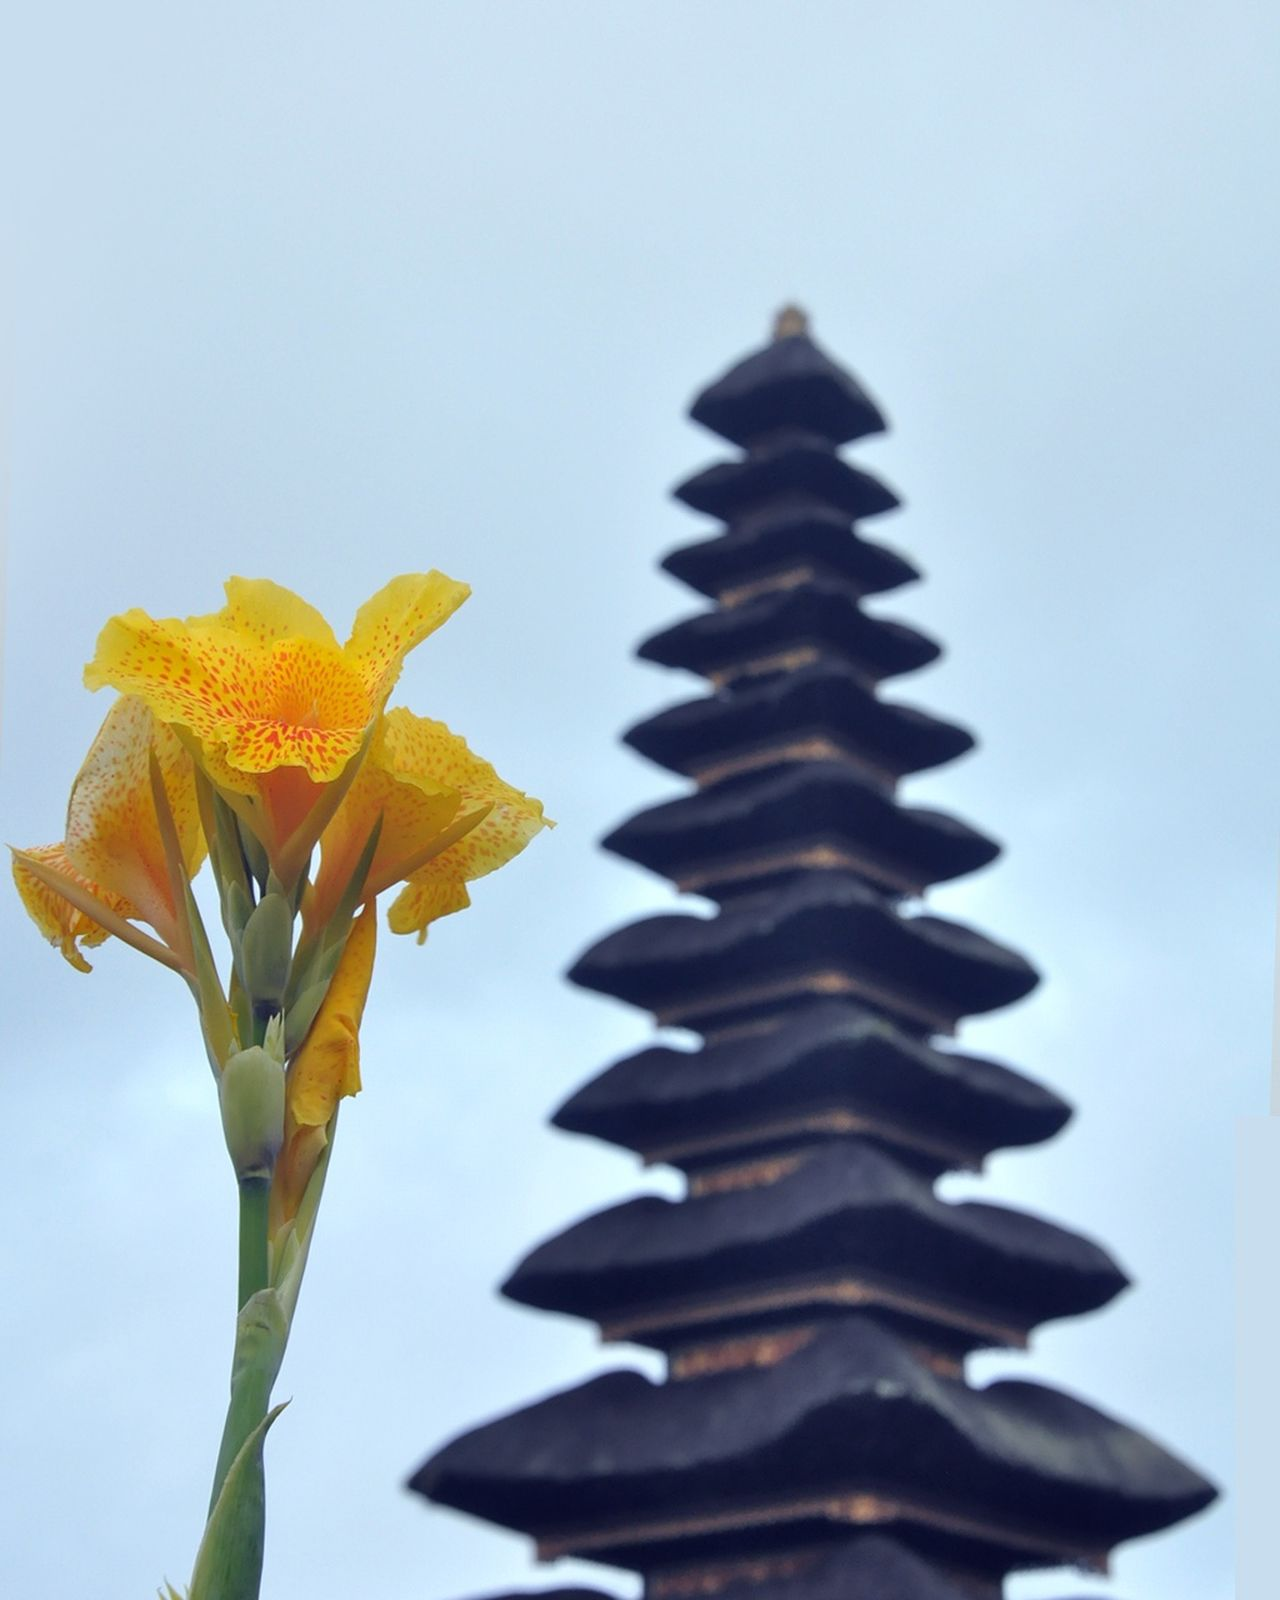 Bedugul, Bali Flower Blue Yellow Nature Sky Beauty In Nature Outdoors Focus Object Beauty In Nature Vacations Tourism Bali Bali, Indonesia Outdoorlife